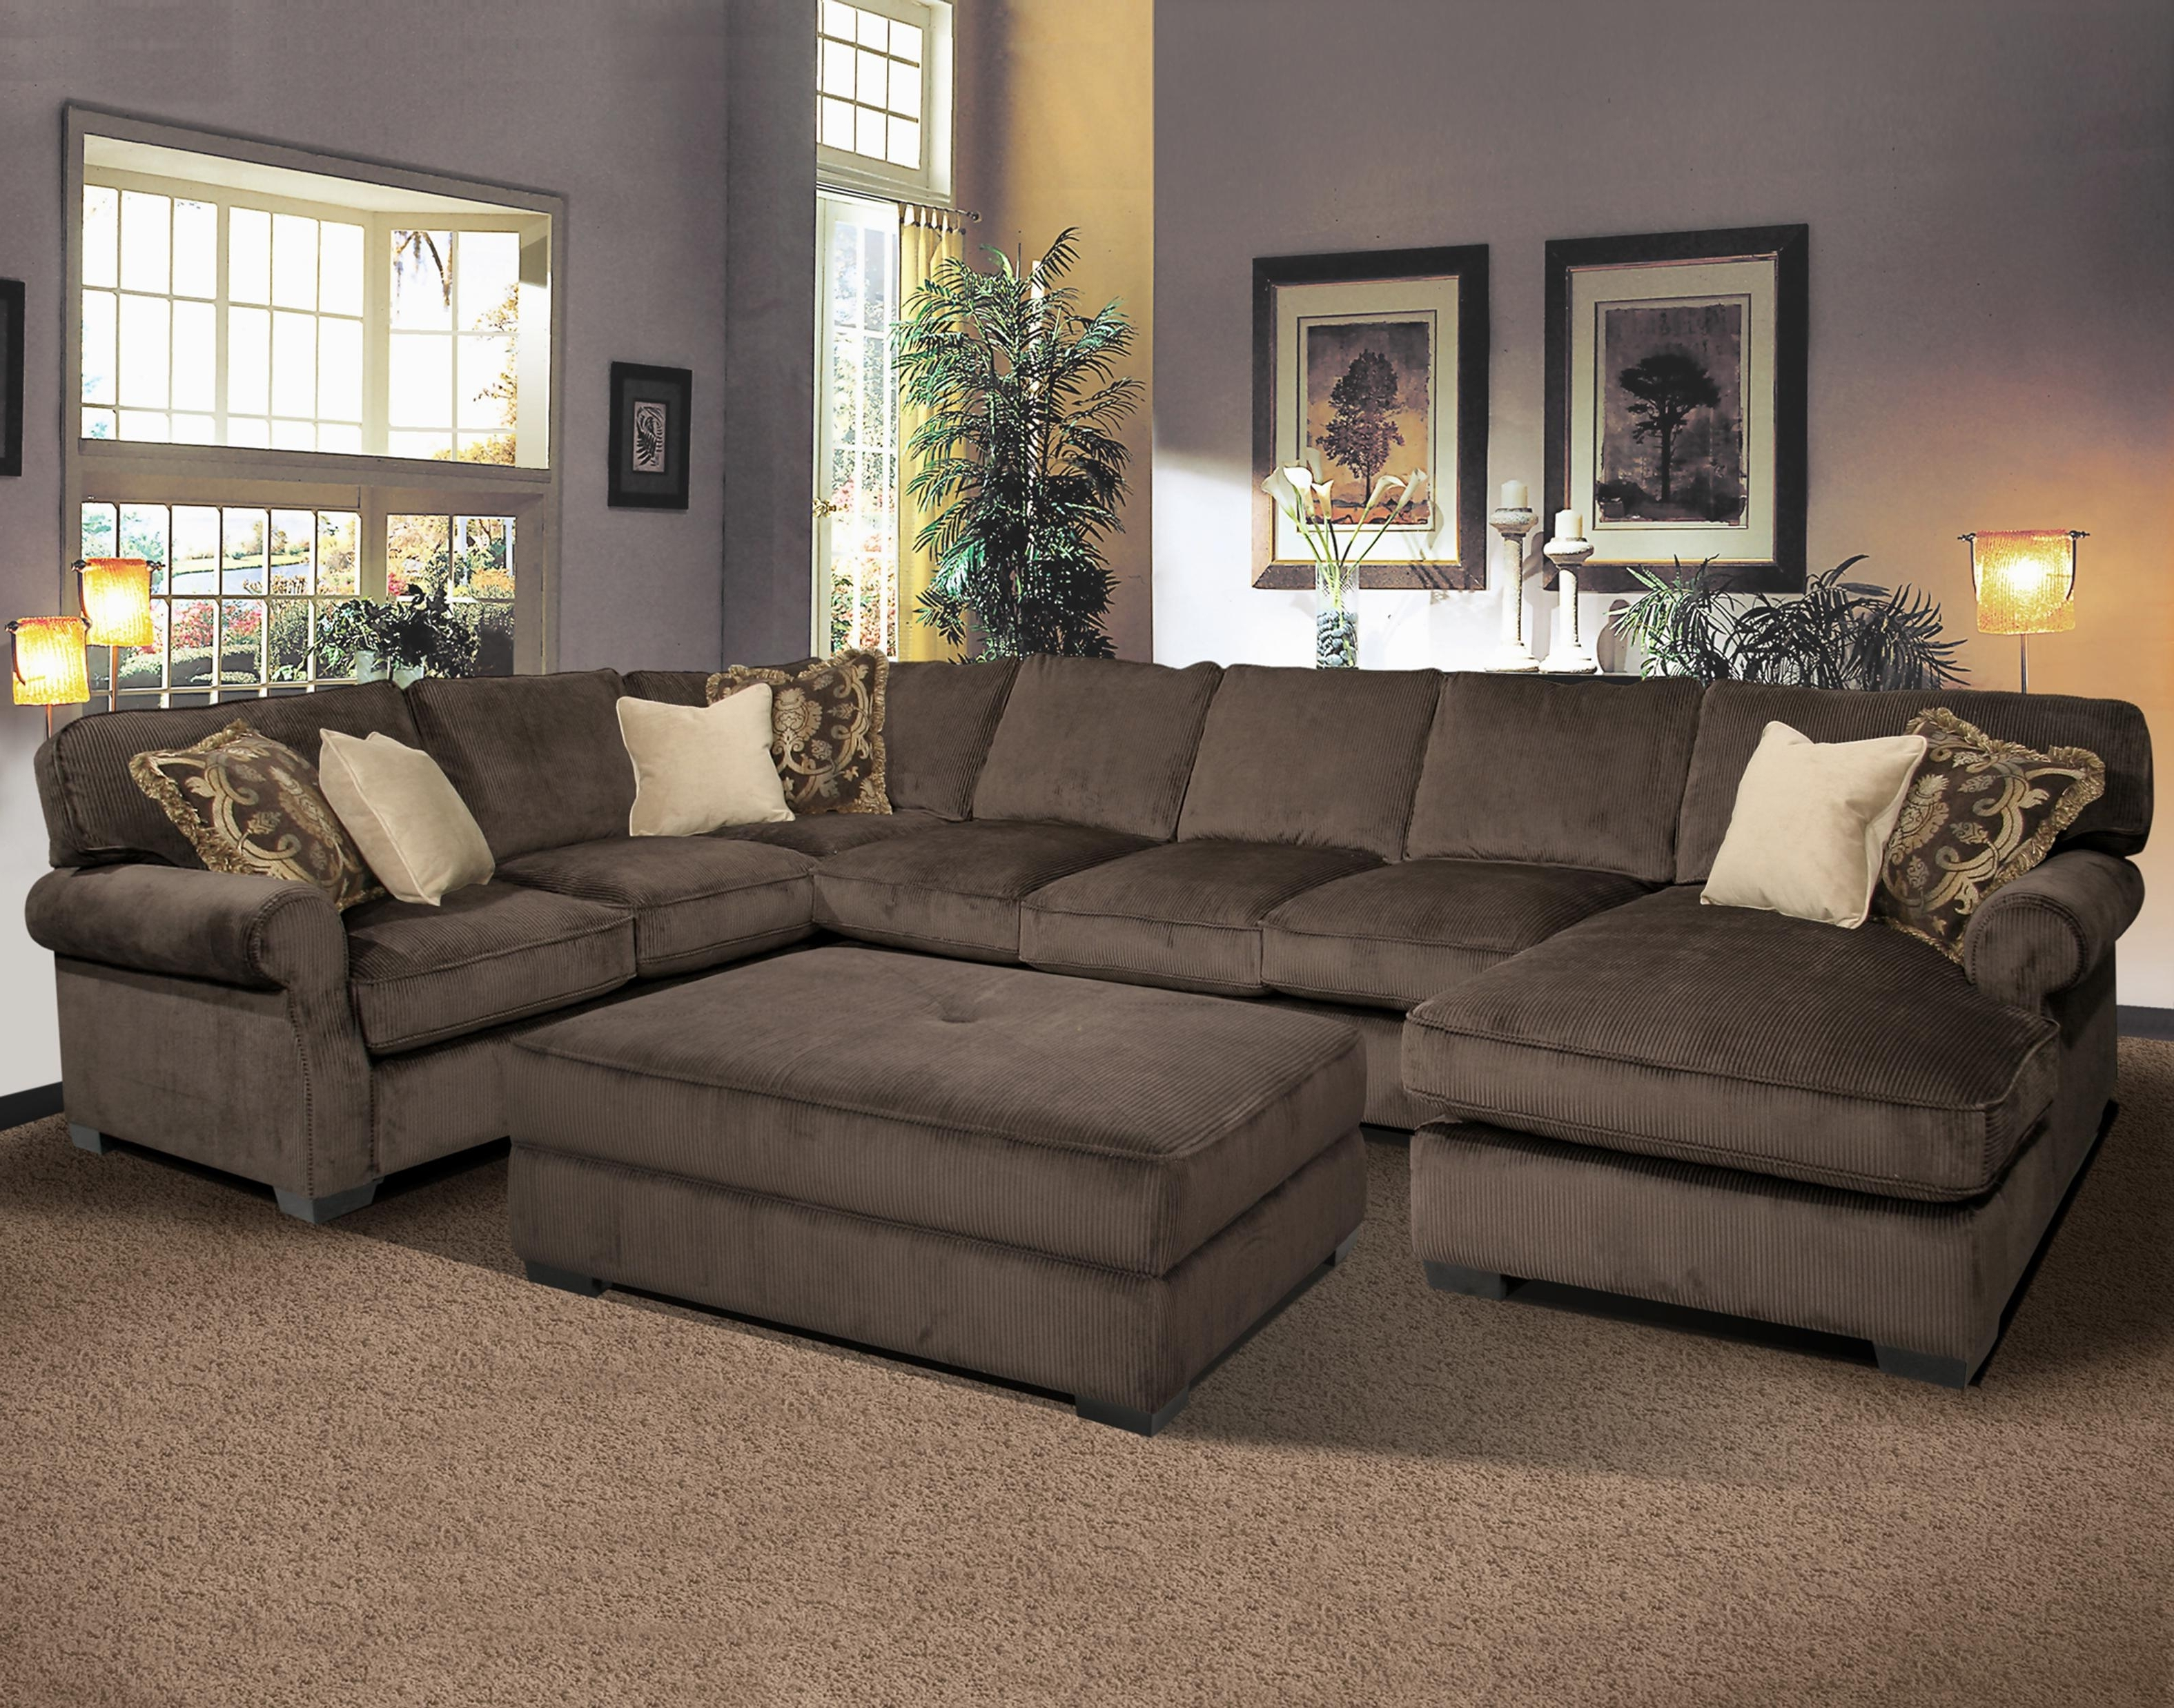 Best And Newest Furniture: Awesome Large U Shaped Sectional Sofas 26 For Your Leather With Regard To Extra Large U Shaped Sectionals (View 2 of 15)